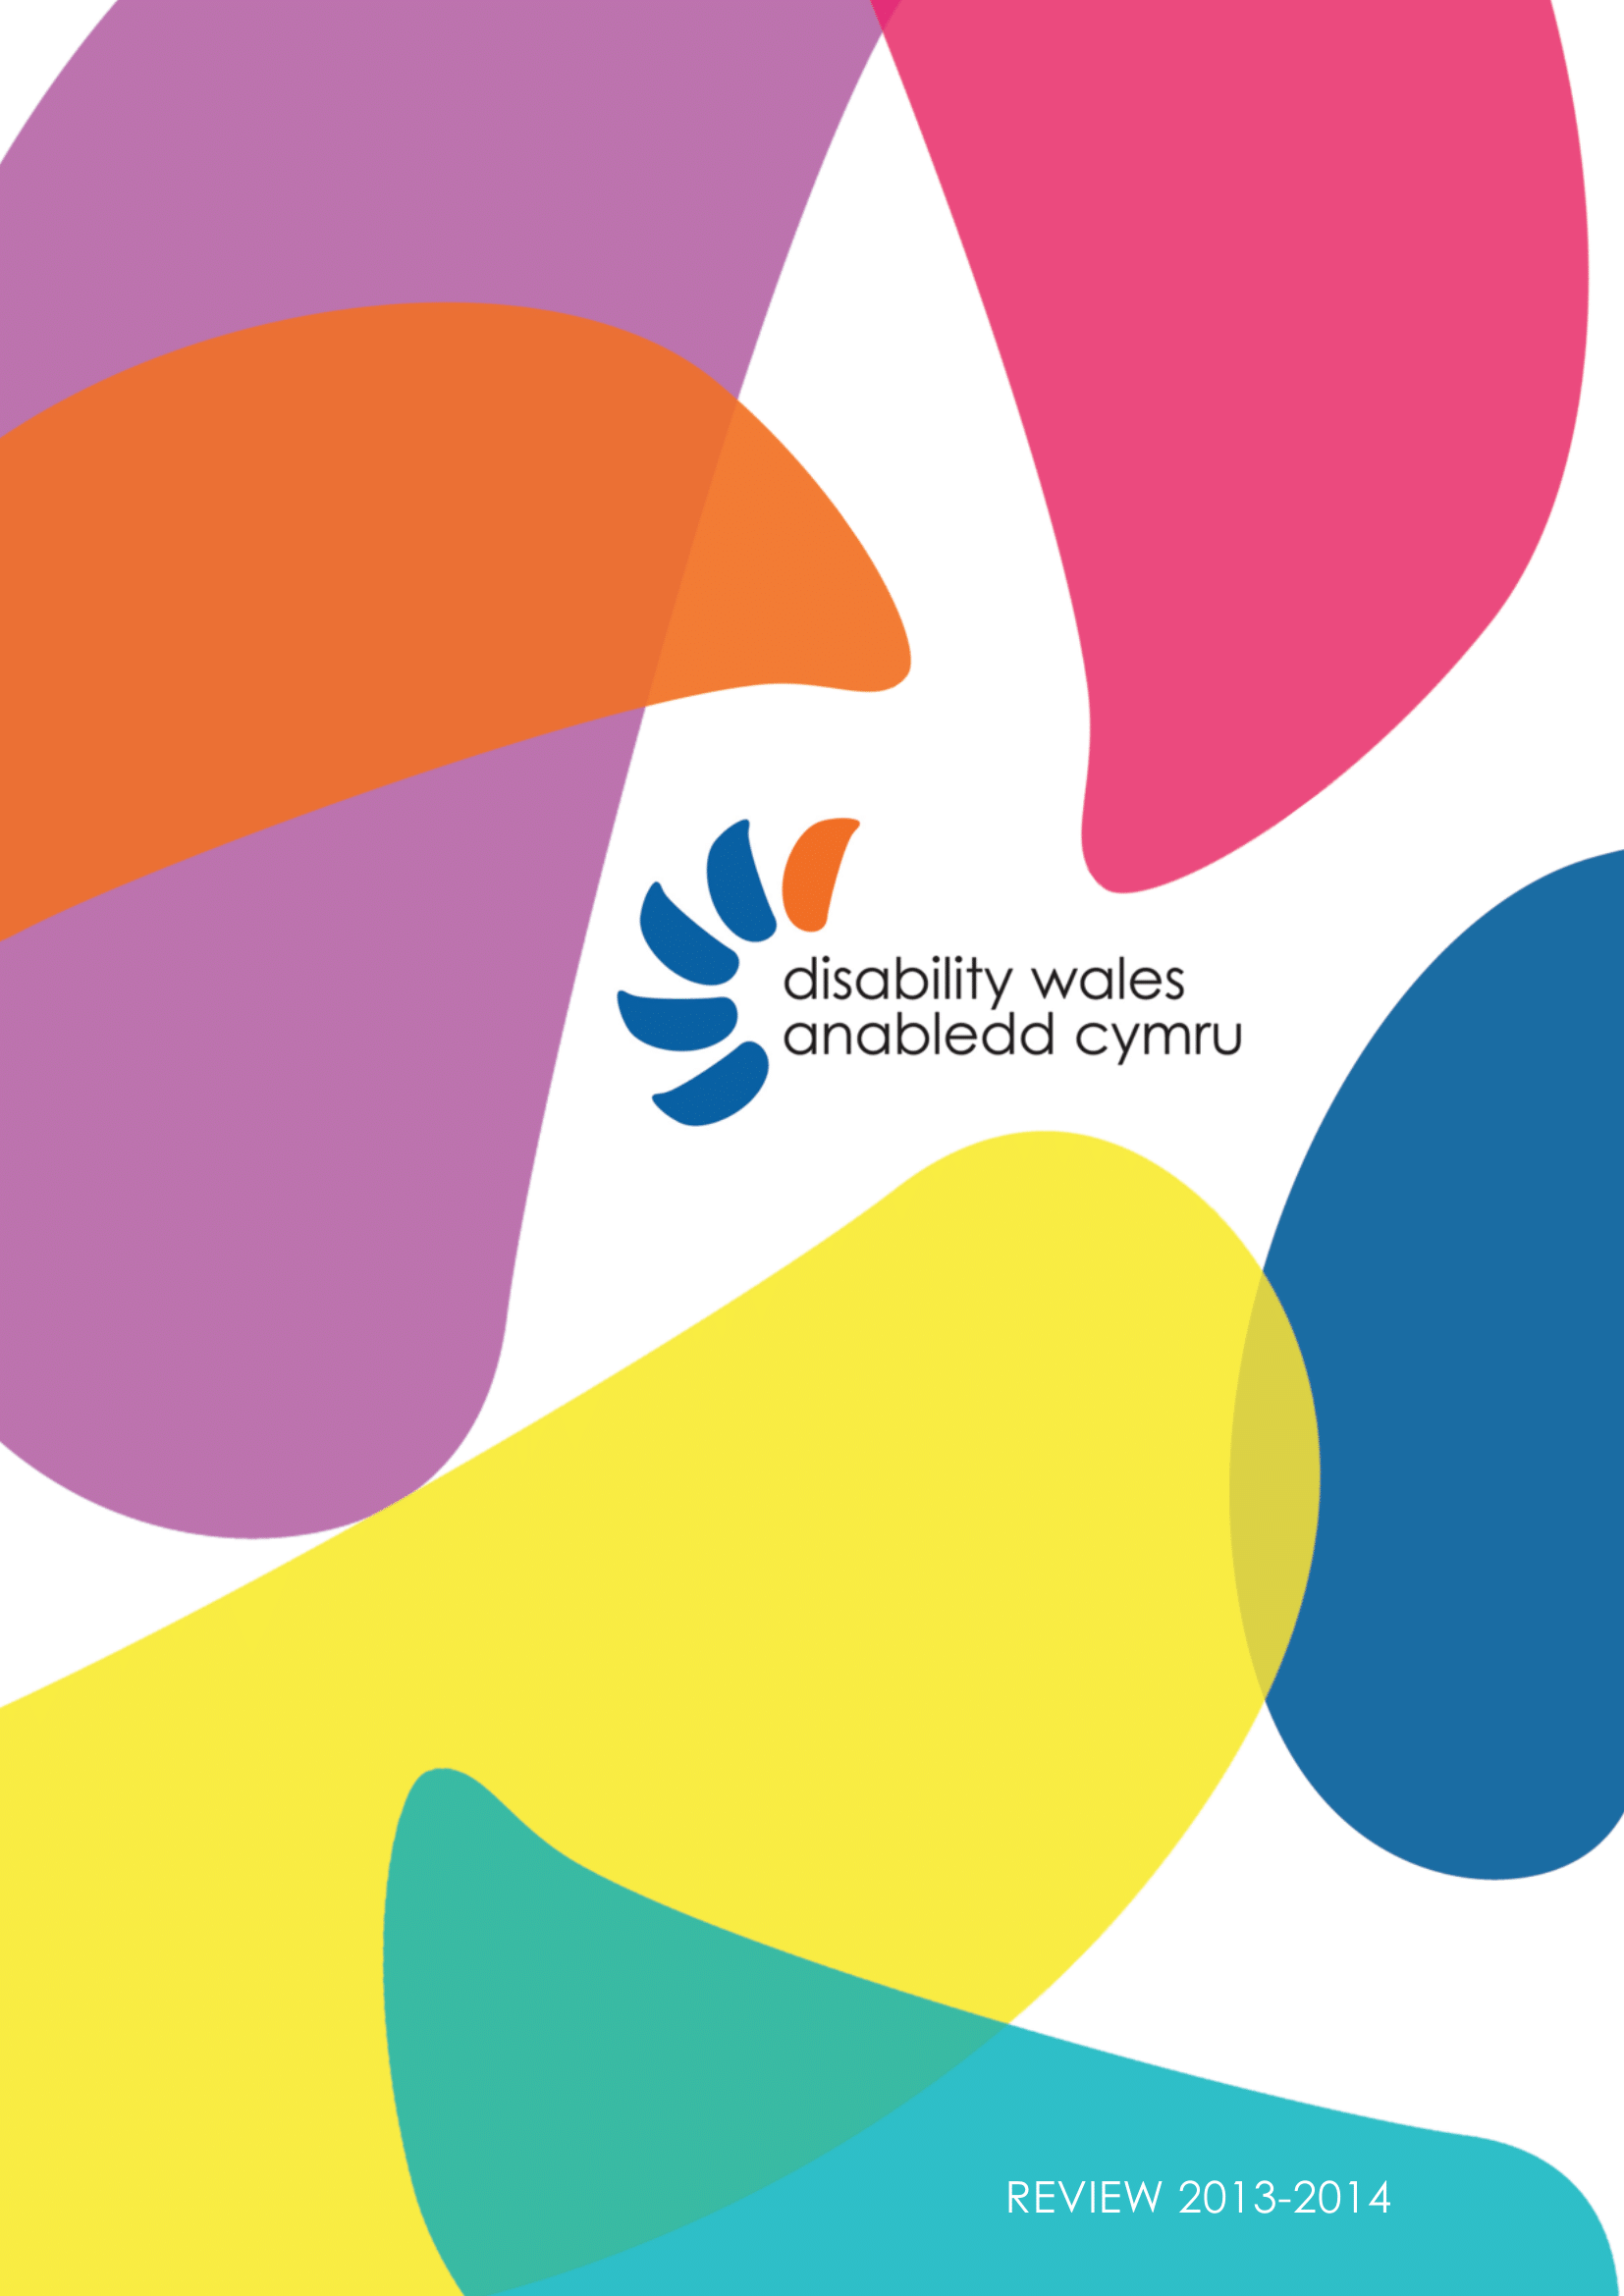 Image for DW Annual Report 2013-2014